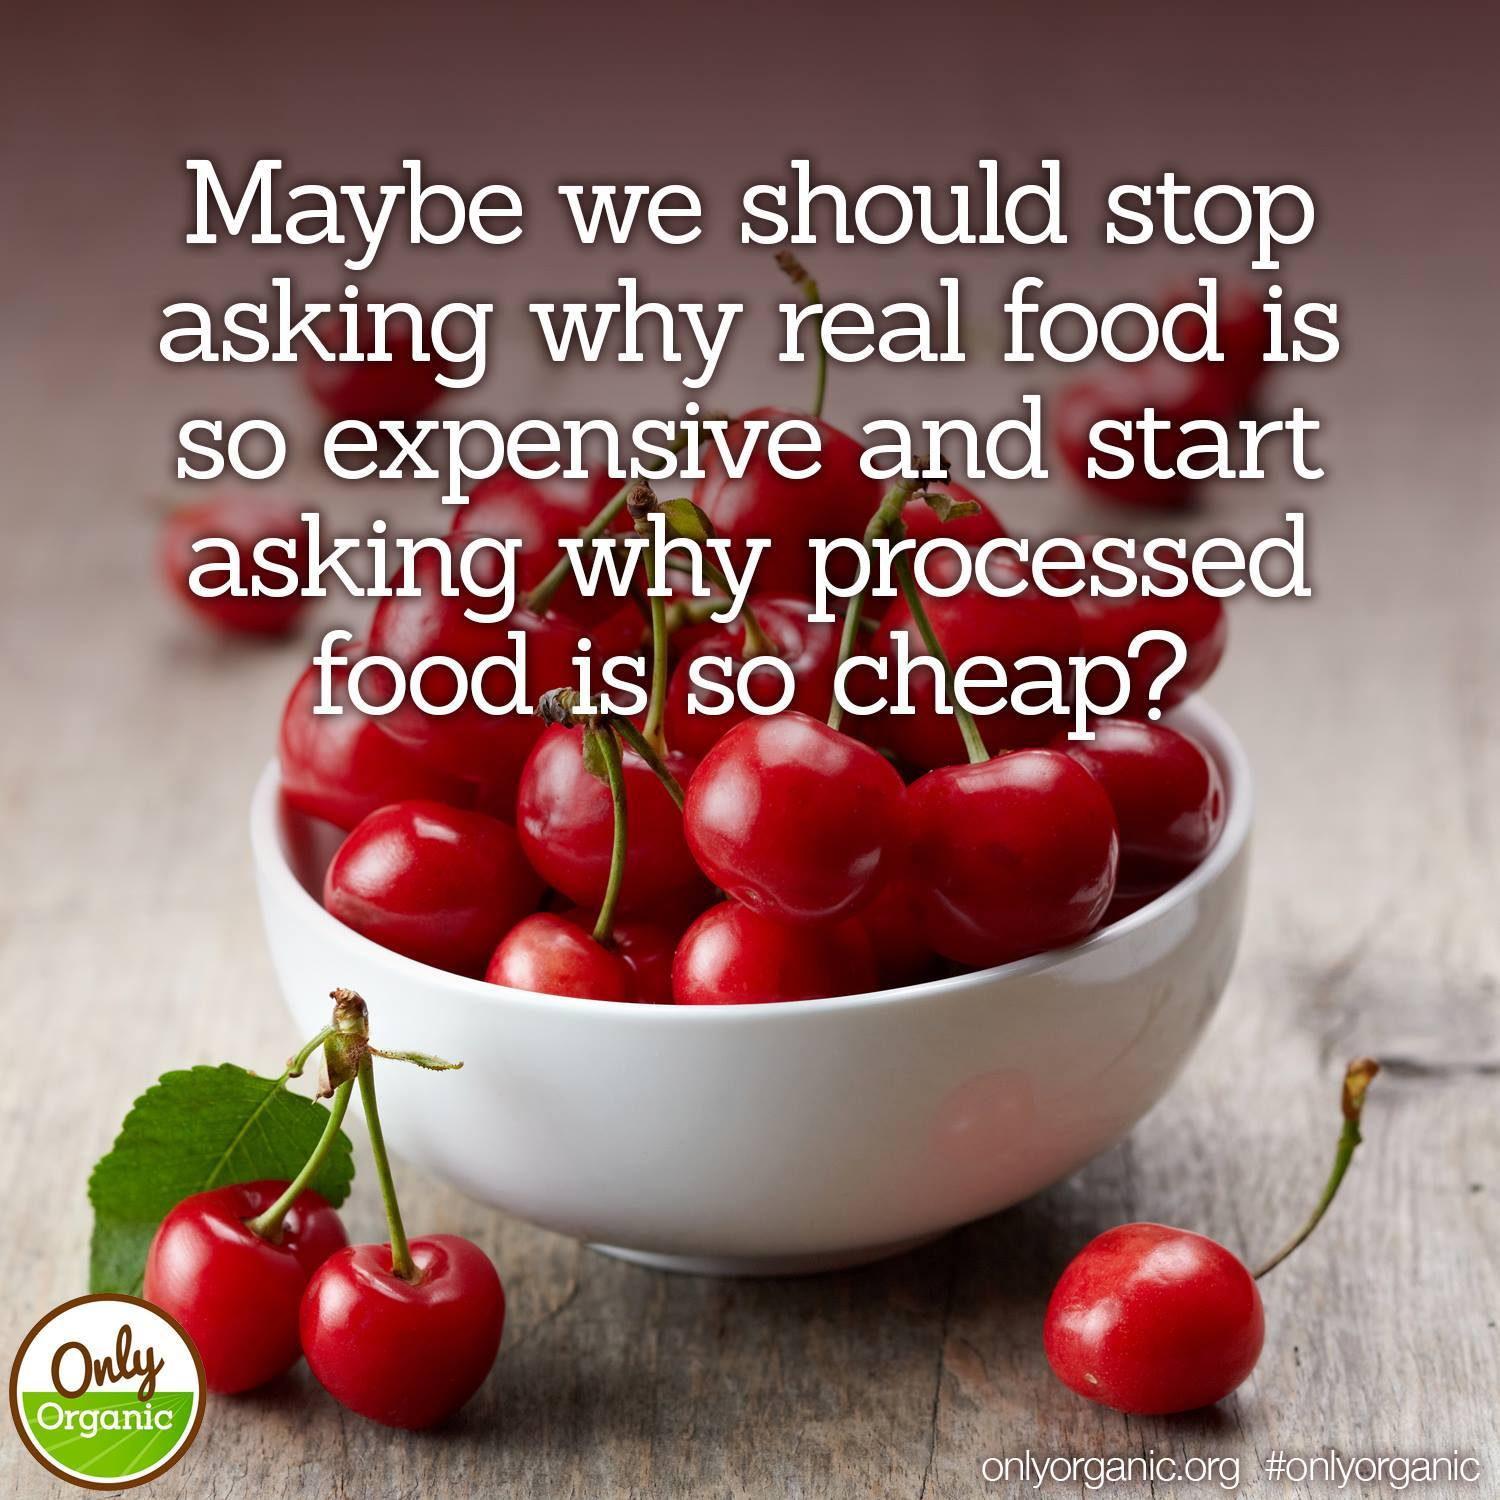 maybe we should stop asking why real food is so expensive and start asking why processed food is so cheap